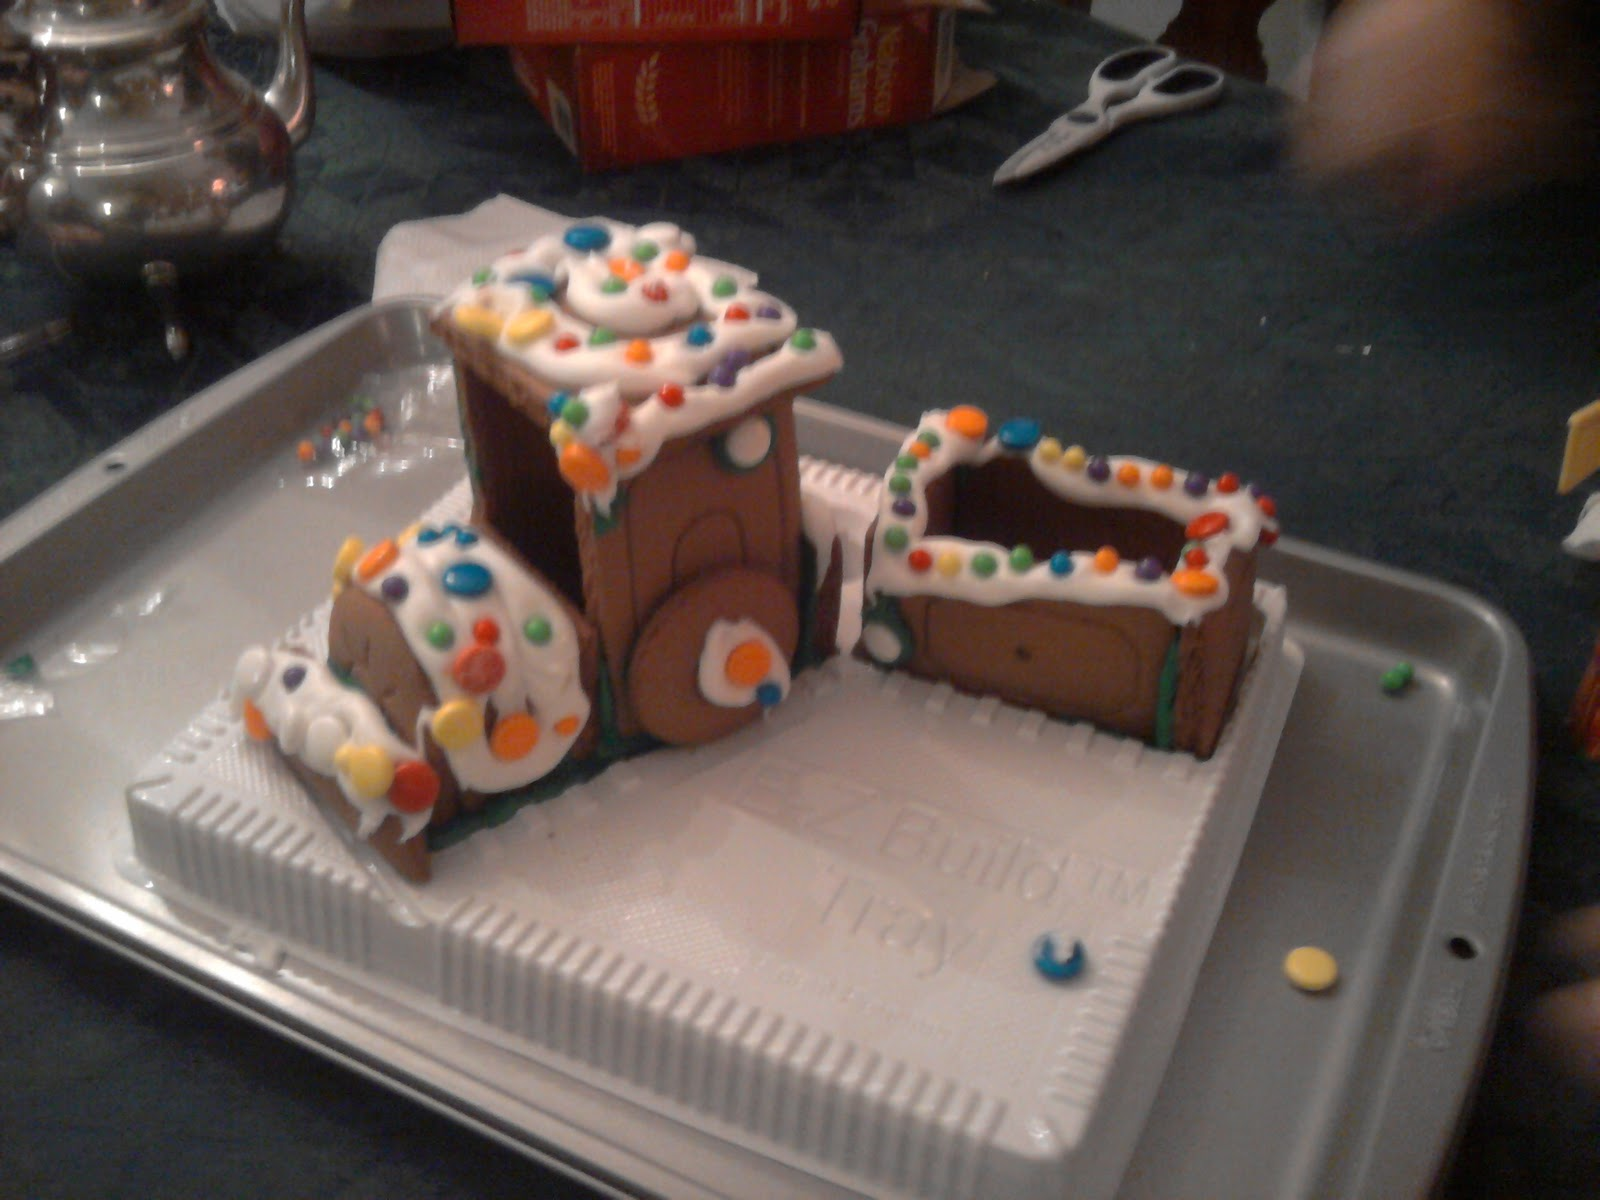 has a graham cracker house